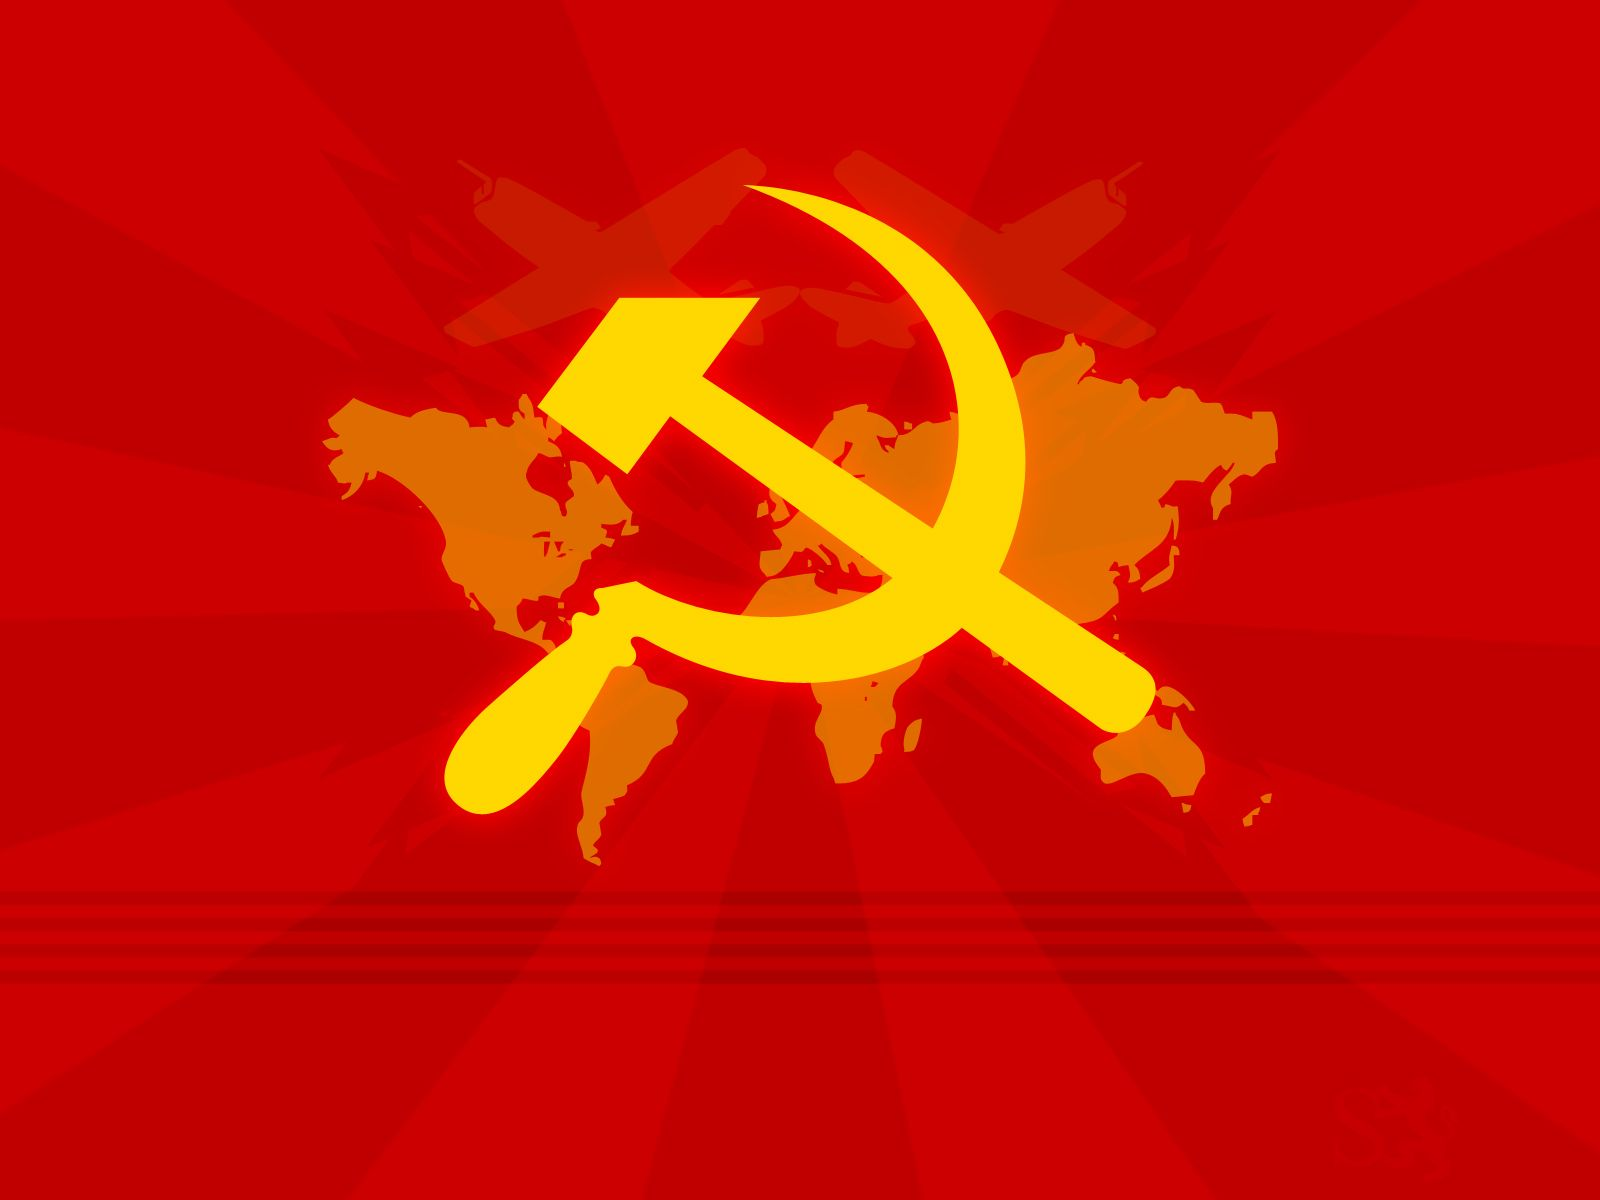 The Communism Symbol Communism Means A Political Theory Derived